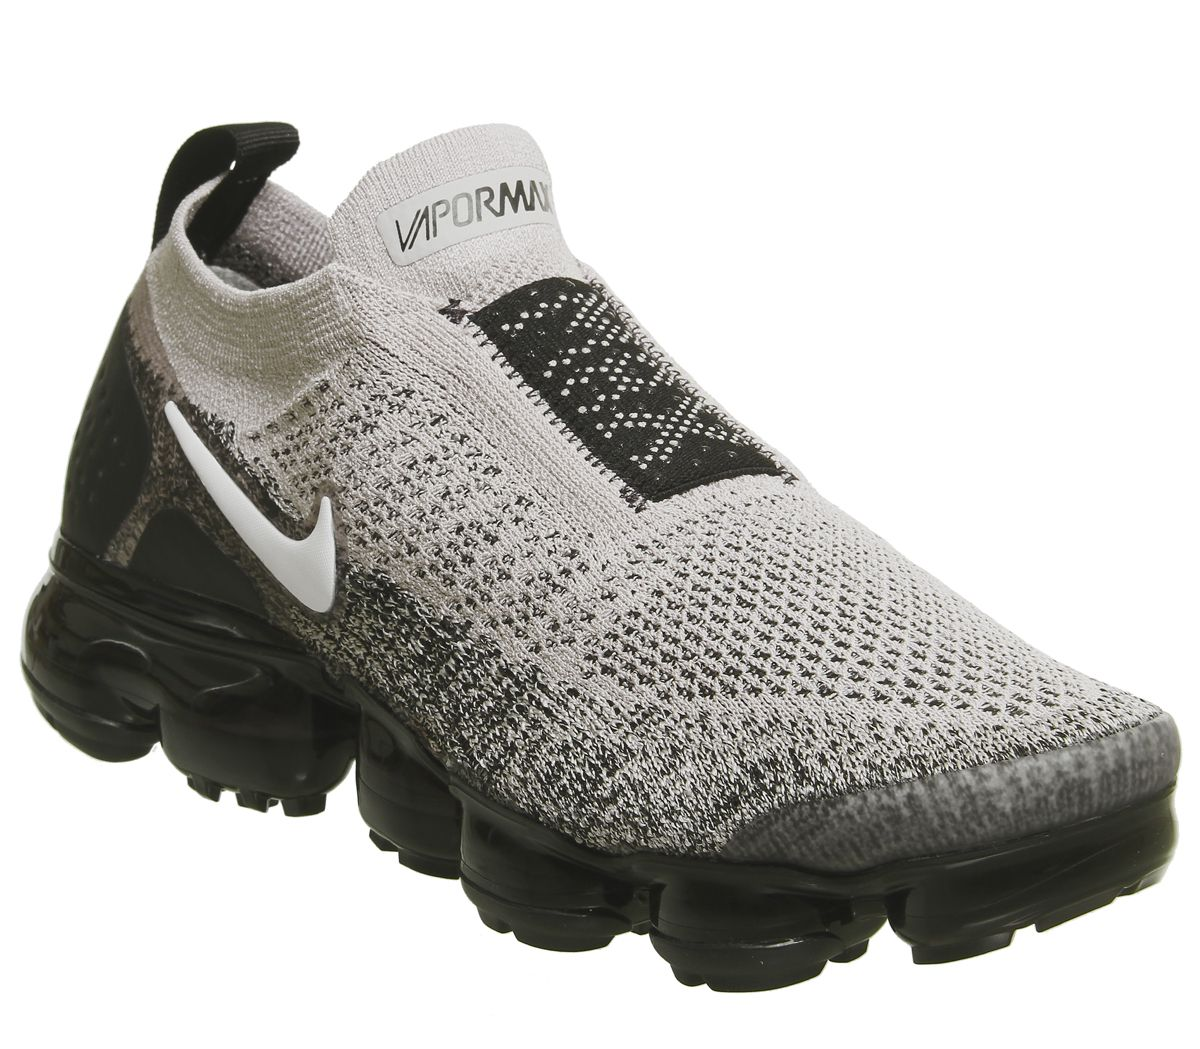 newest collection 78221 2006b Nike, Air Vapormax Flyknit Moc 2, Moon Particle White Black